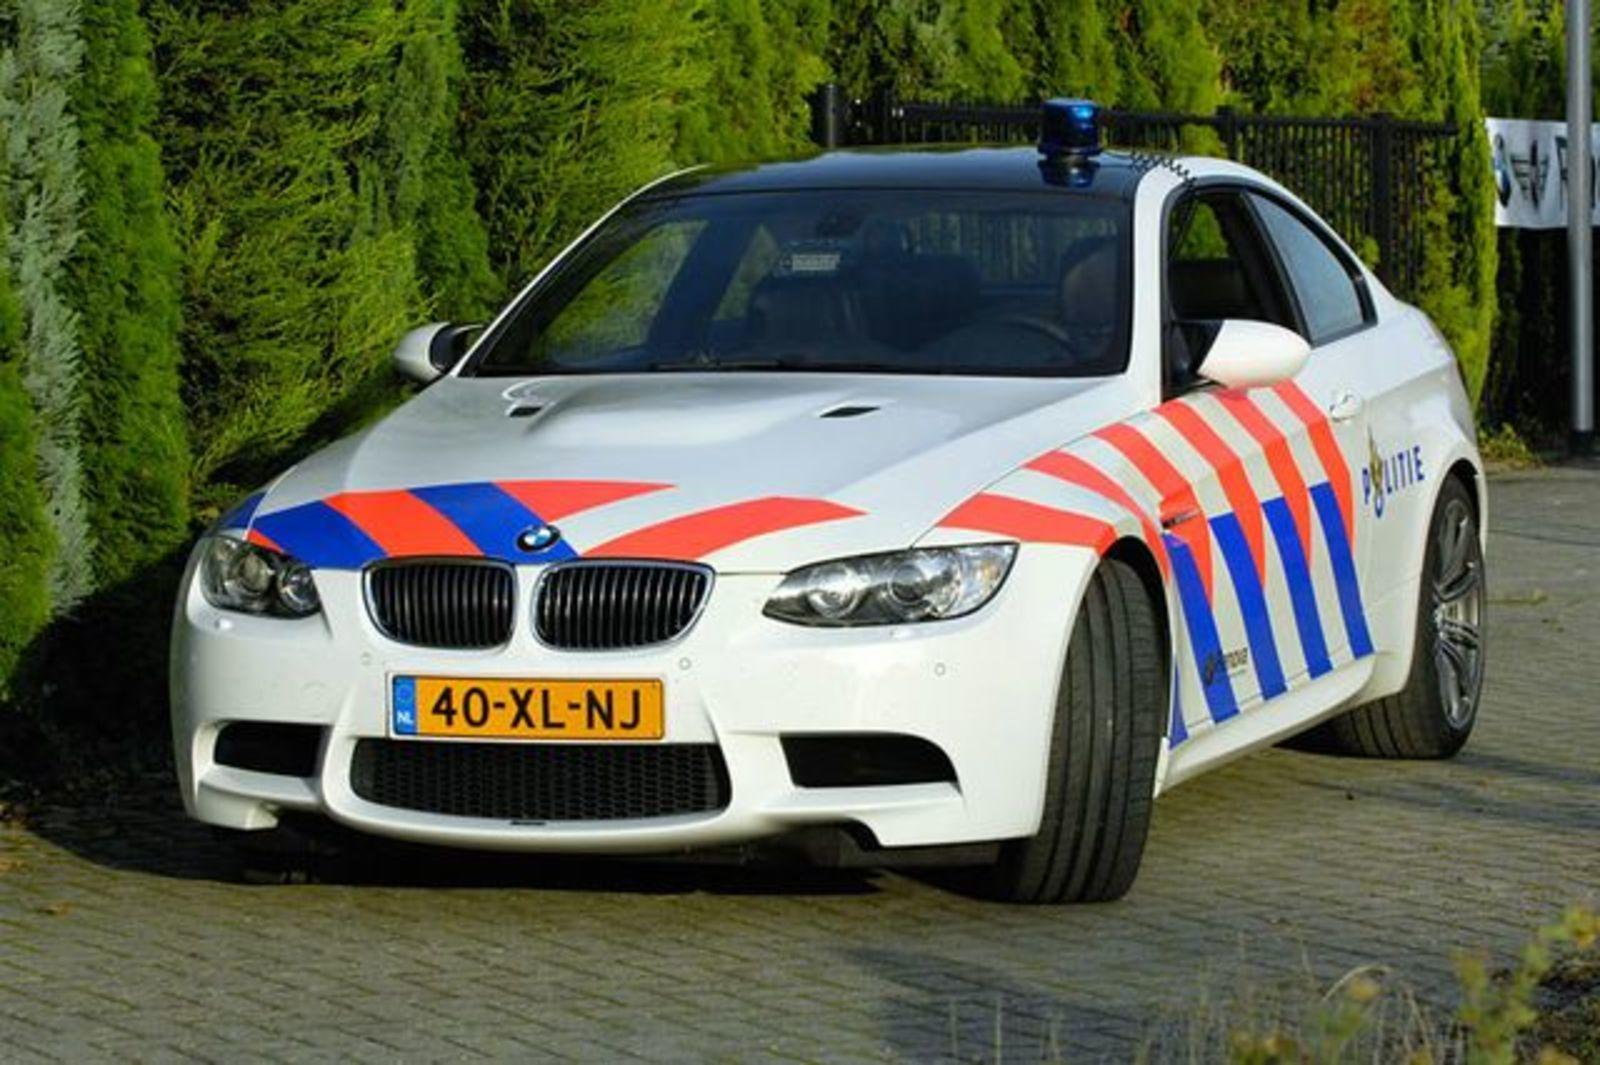 Bmw Of Newton >> BMW M3 Police Car News - Top Speed